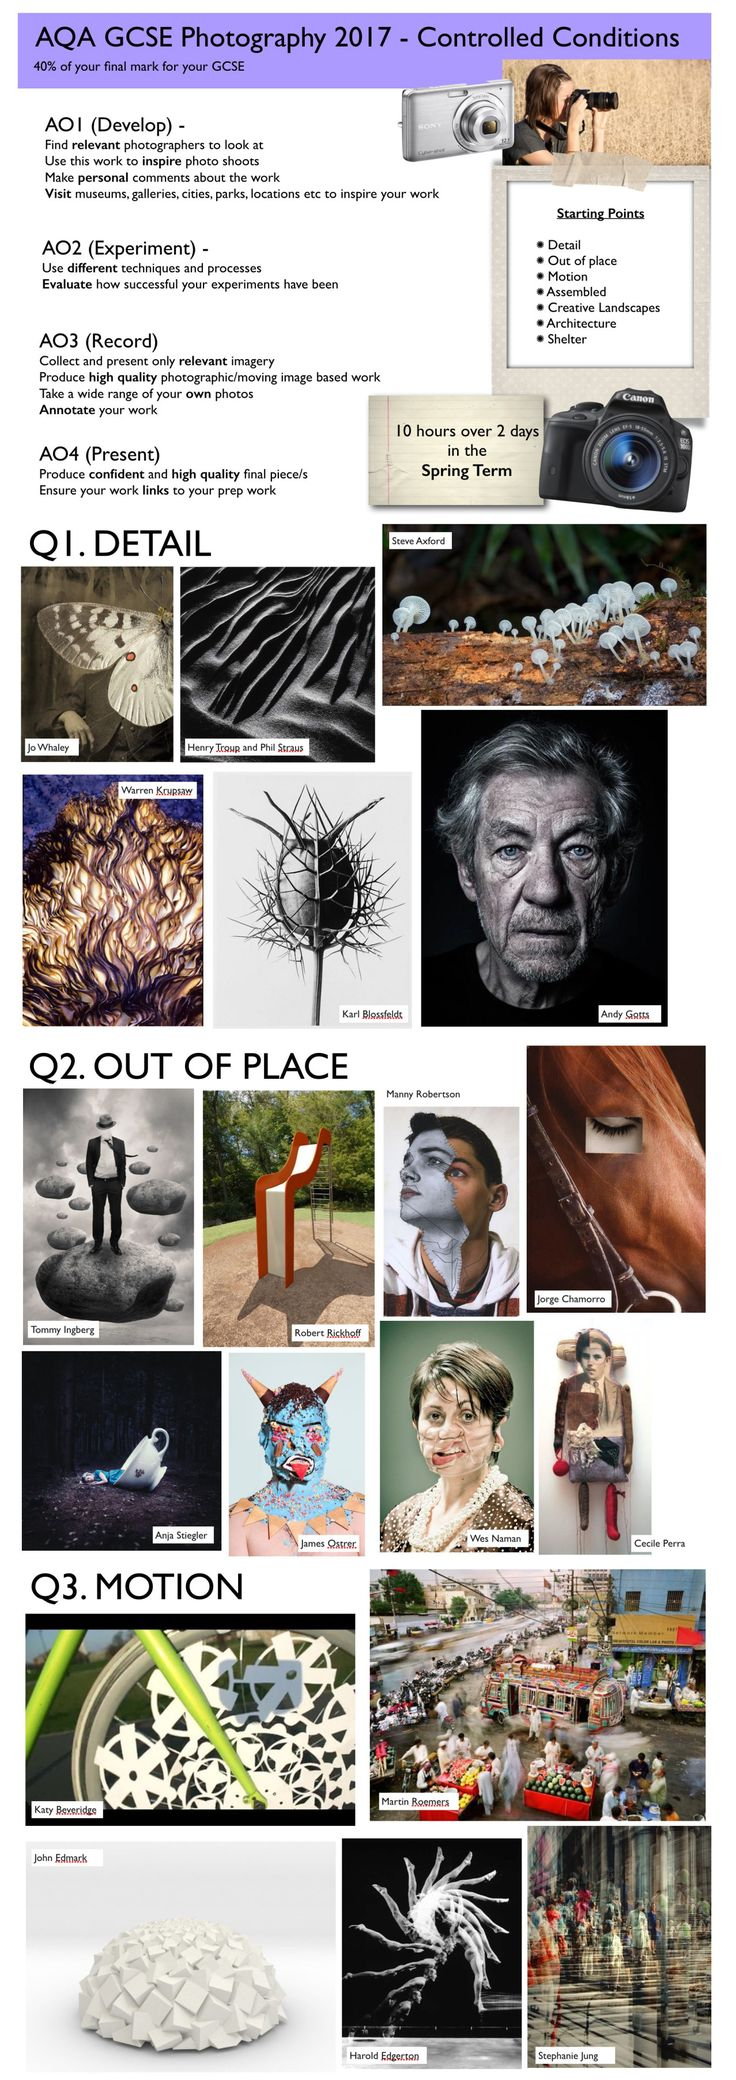 As promised below I have uploaded my resource for the the 2017 GCSE AQA Photography task, I hope it proves to be useful for you! Powerpoint presentation (right click to save): photographers-for-exa…